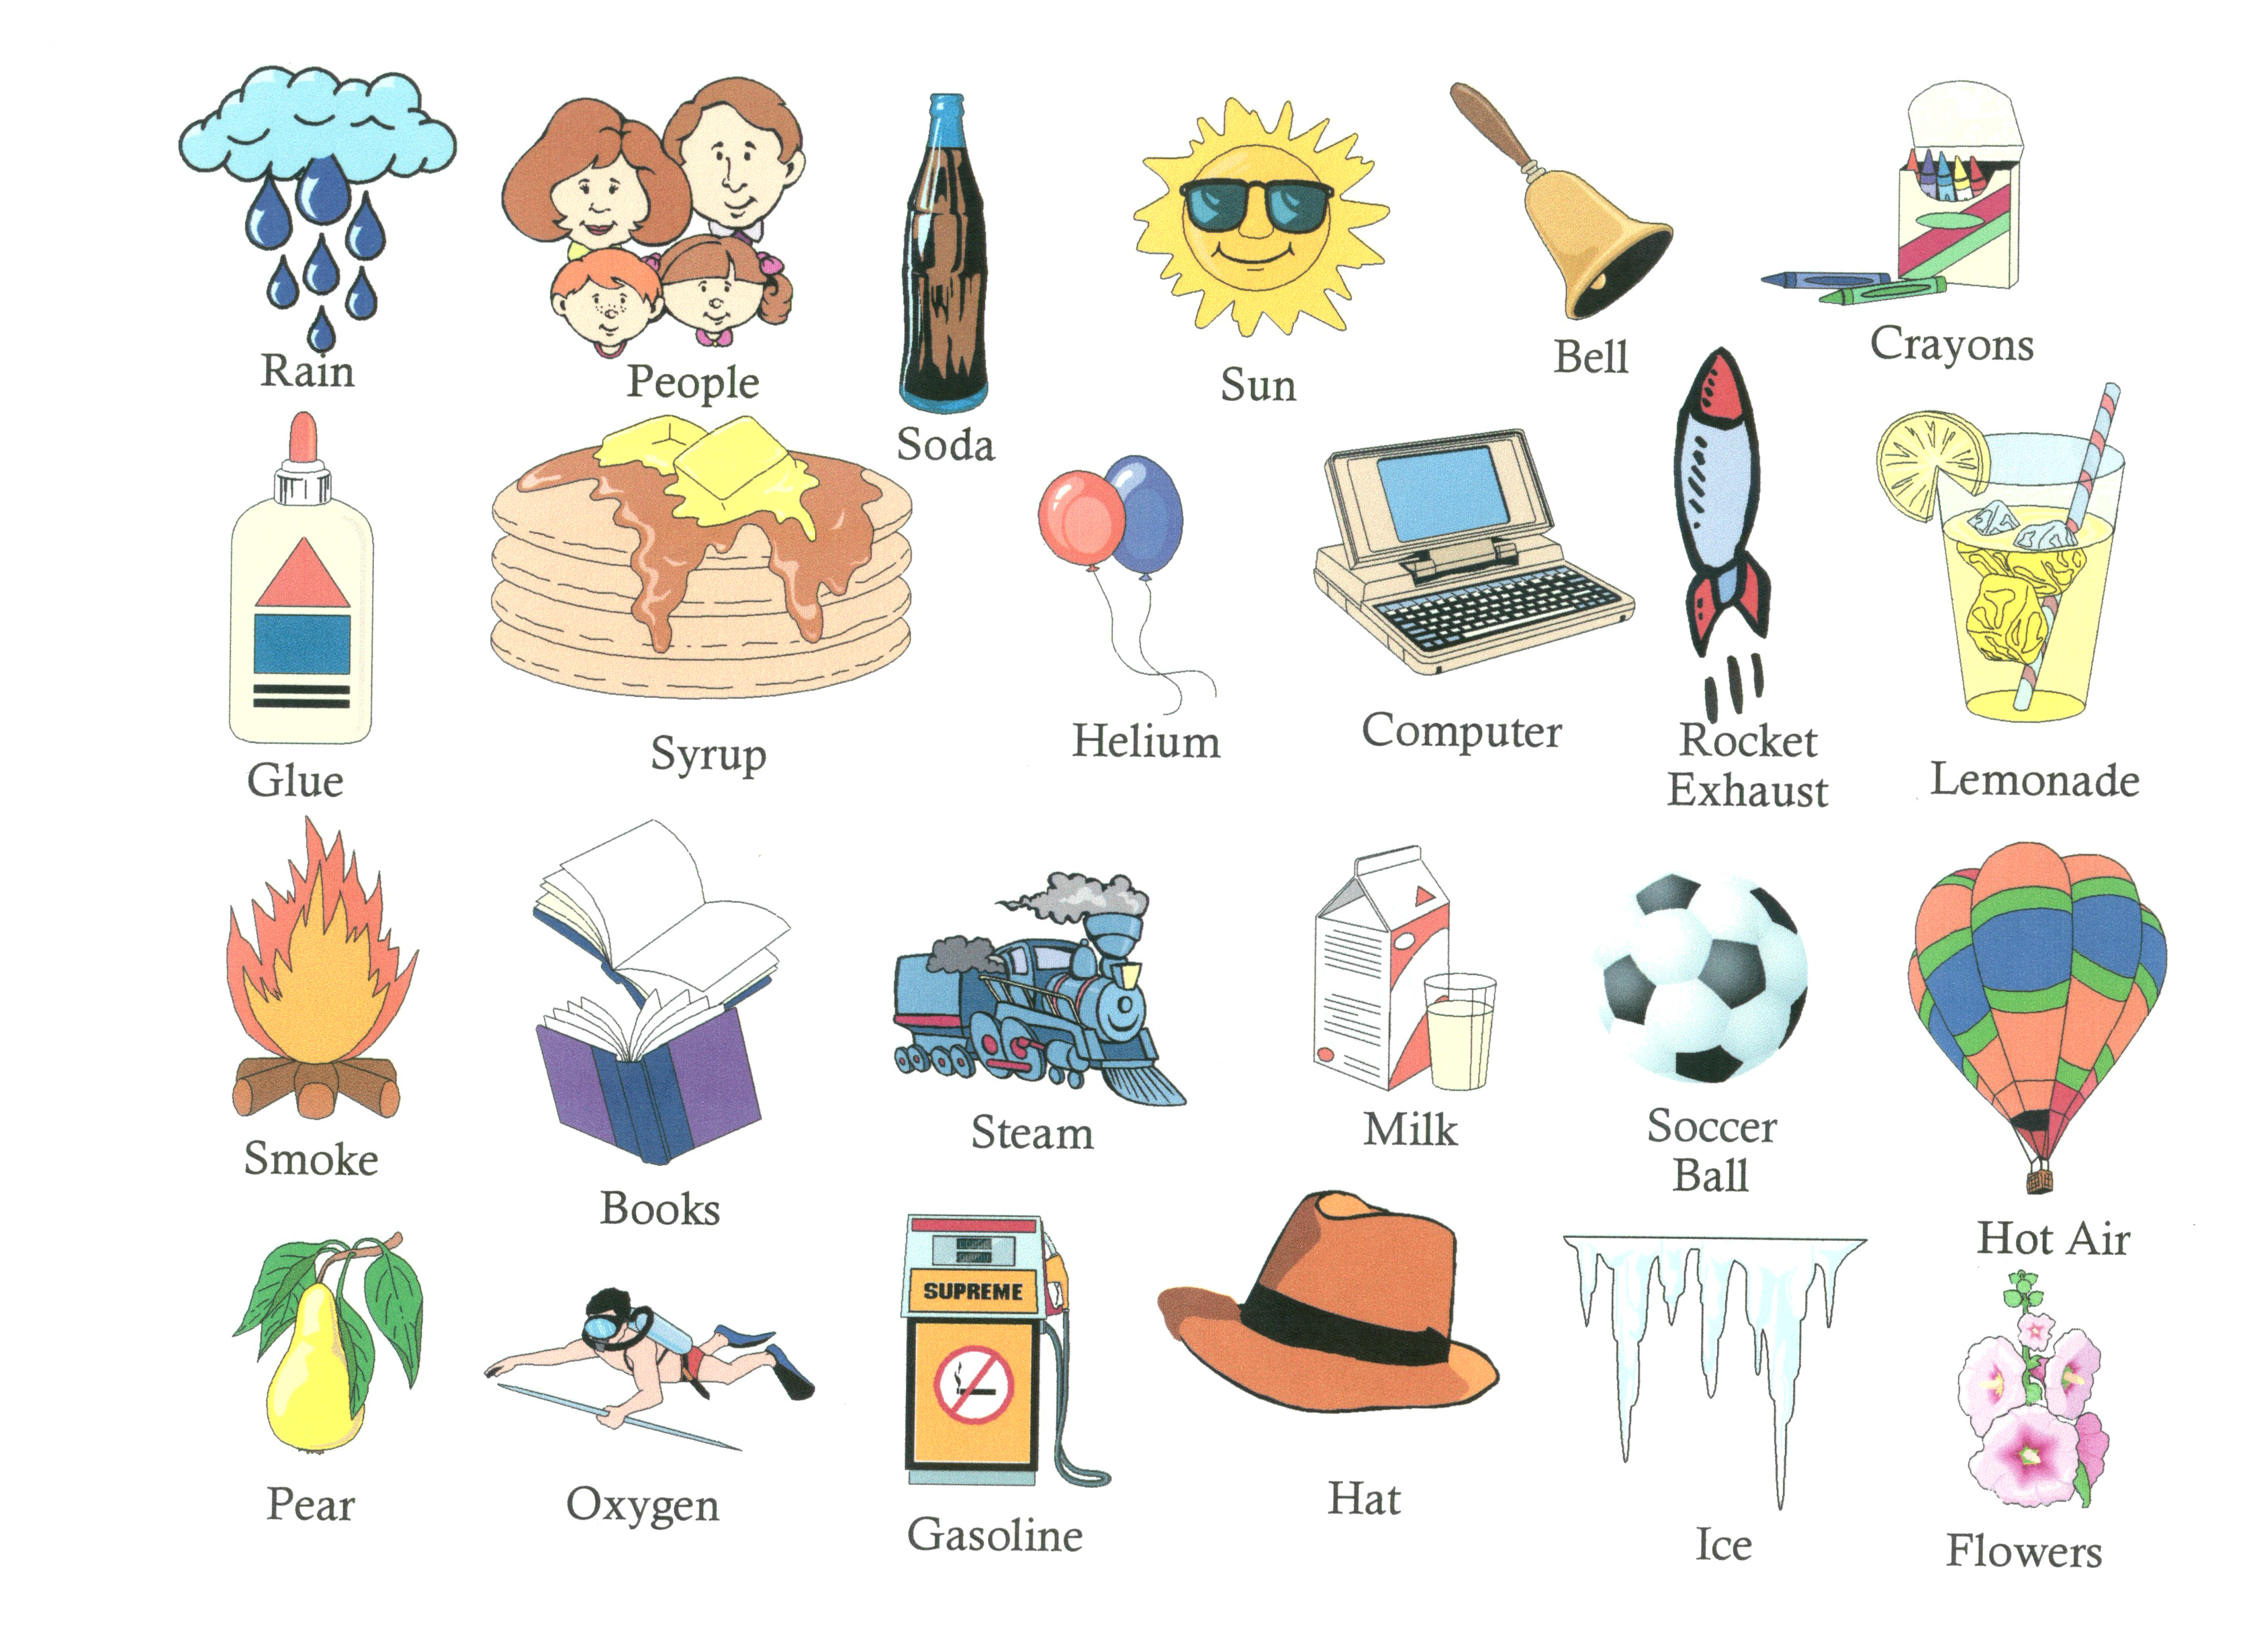 Liquid clipart gas Of ClipartFest gas Examples BBCpersian7